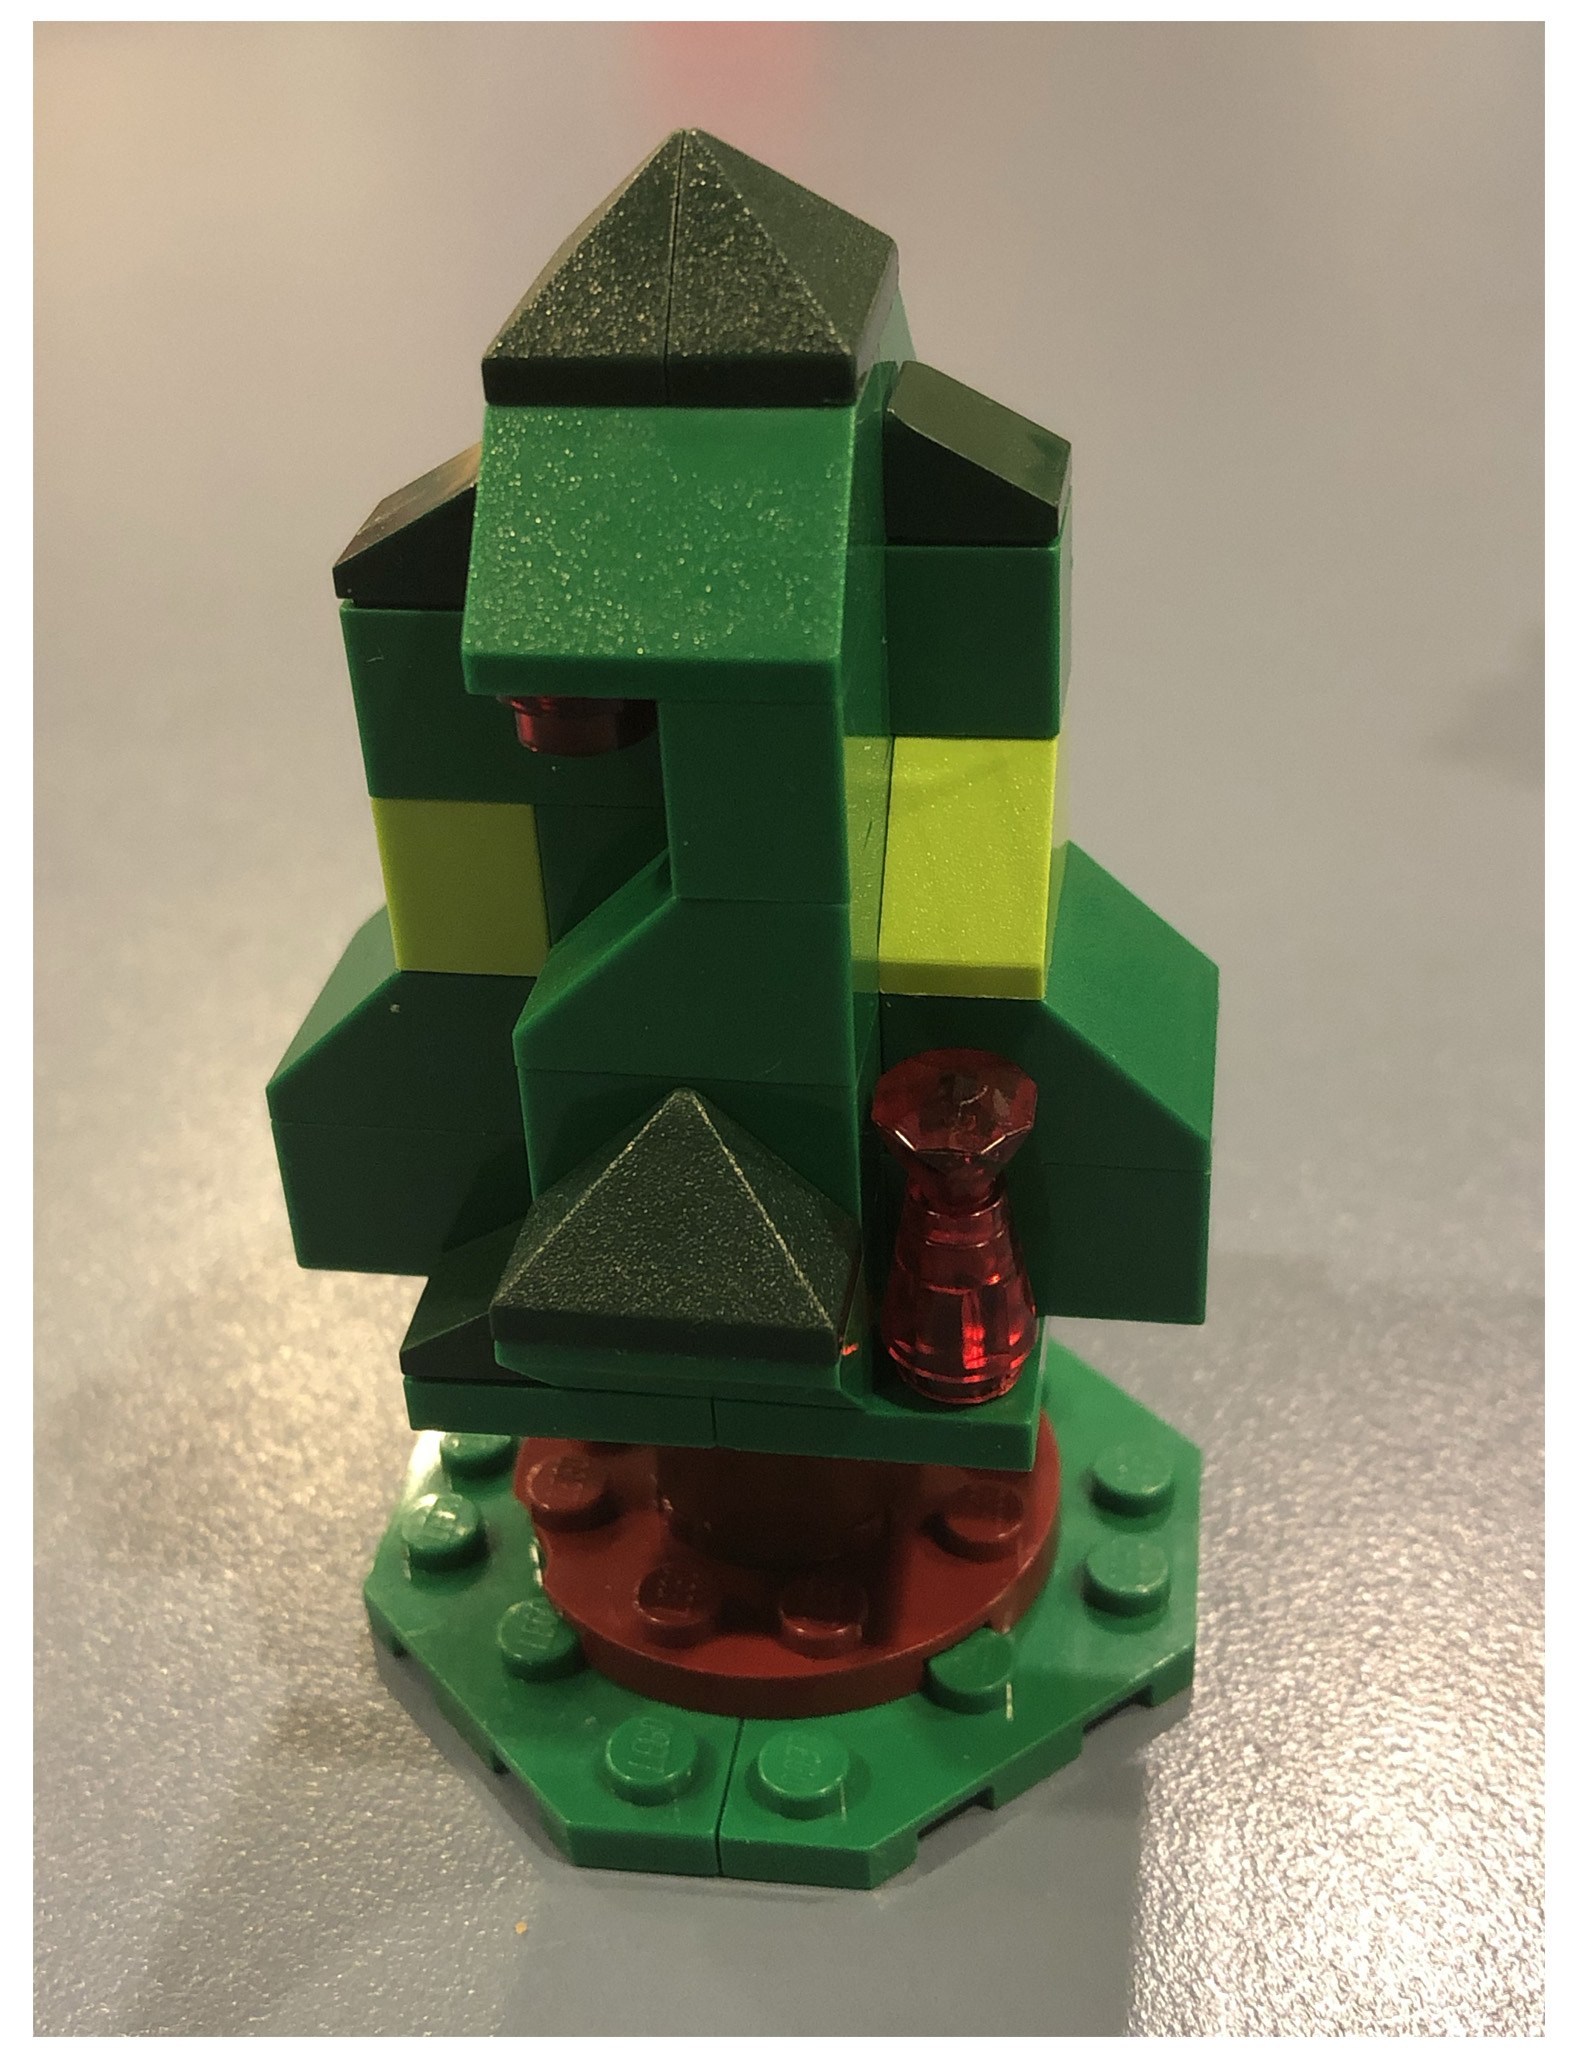 Read more about the article Lego Challenge: Build a Christmas Tree